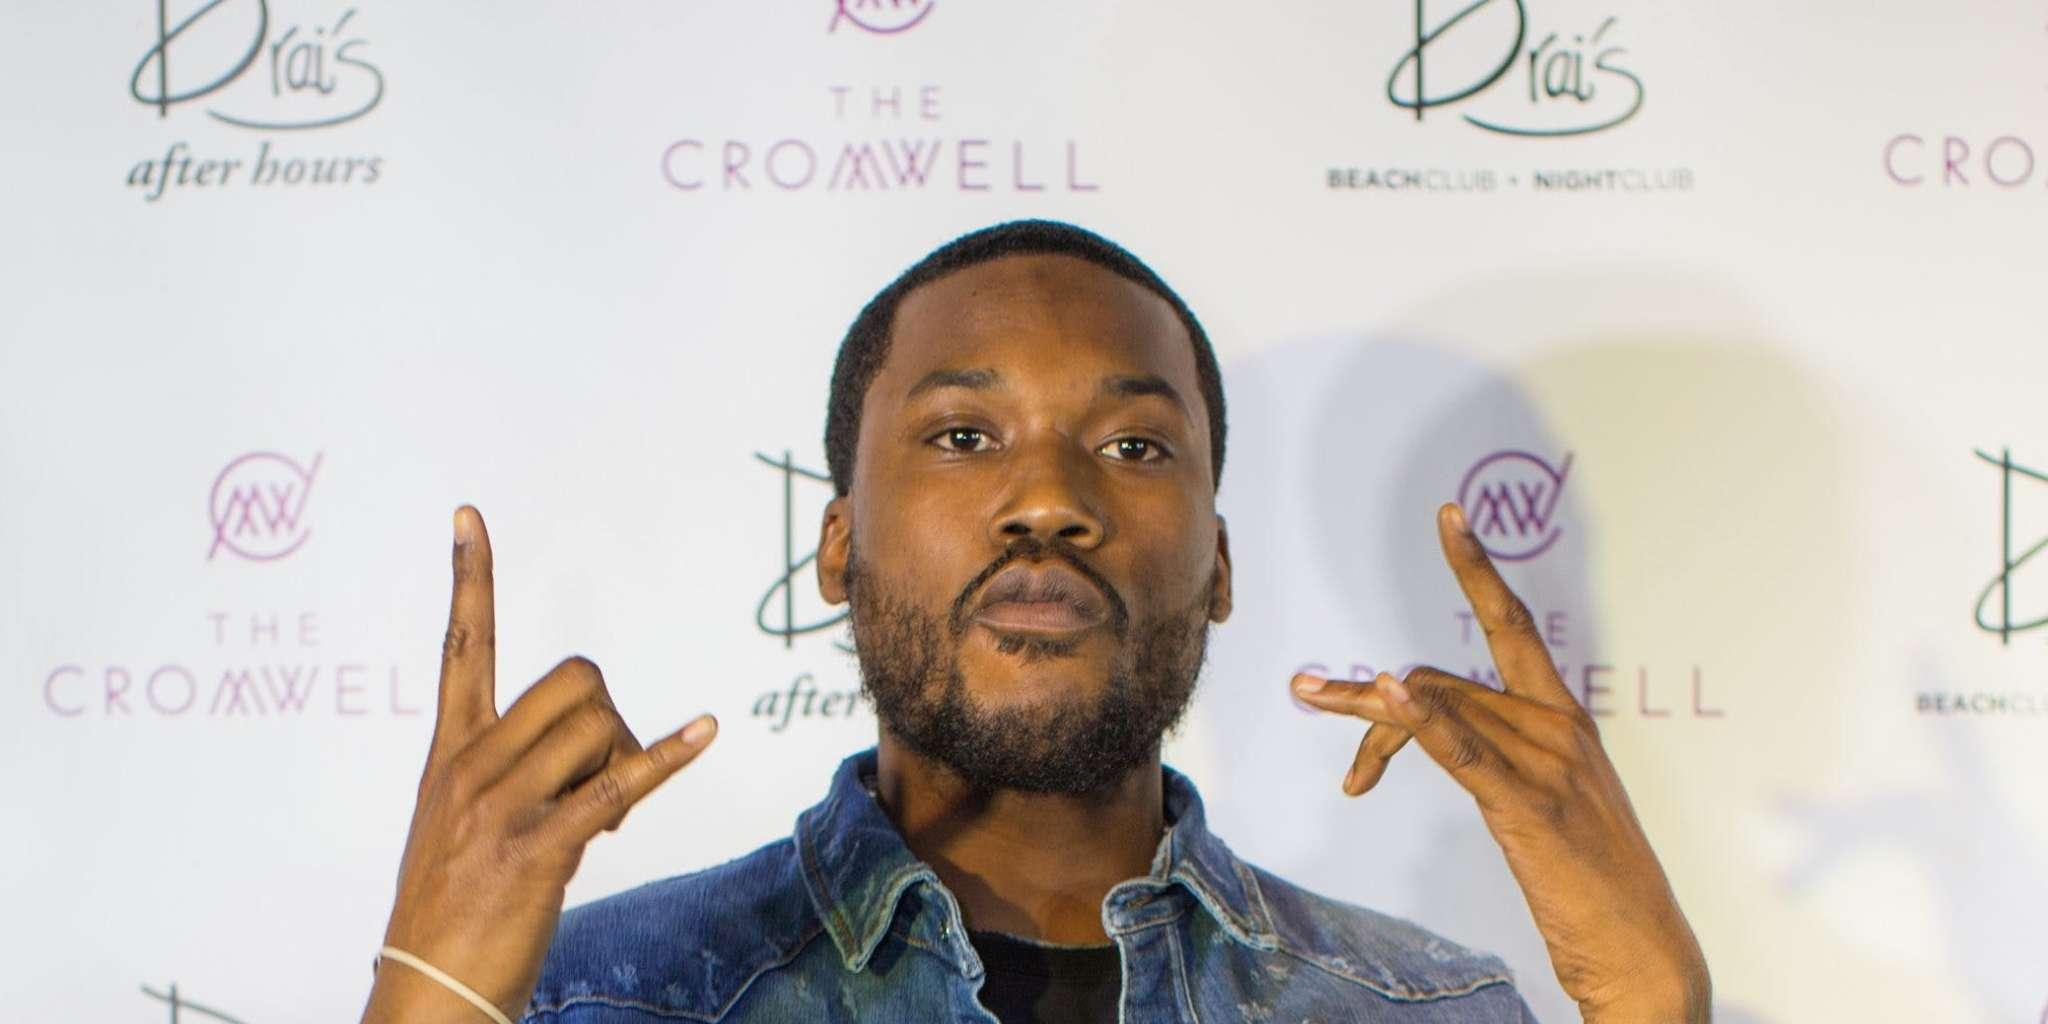 Meek Mill Pleads Guilty To A Misdemeanor Gun Charge And All The Other Charges Against Him Are Dropped